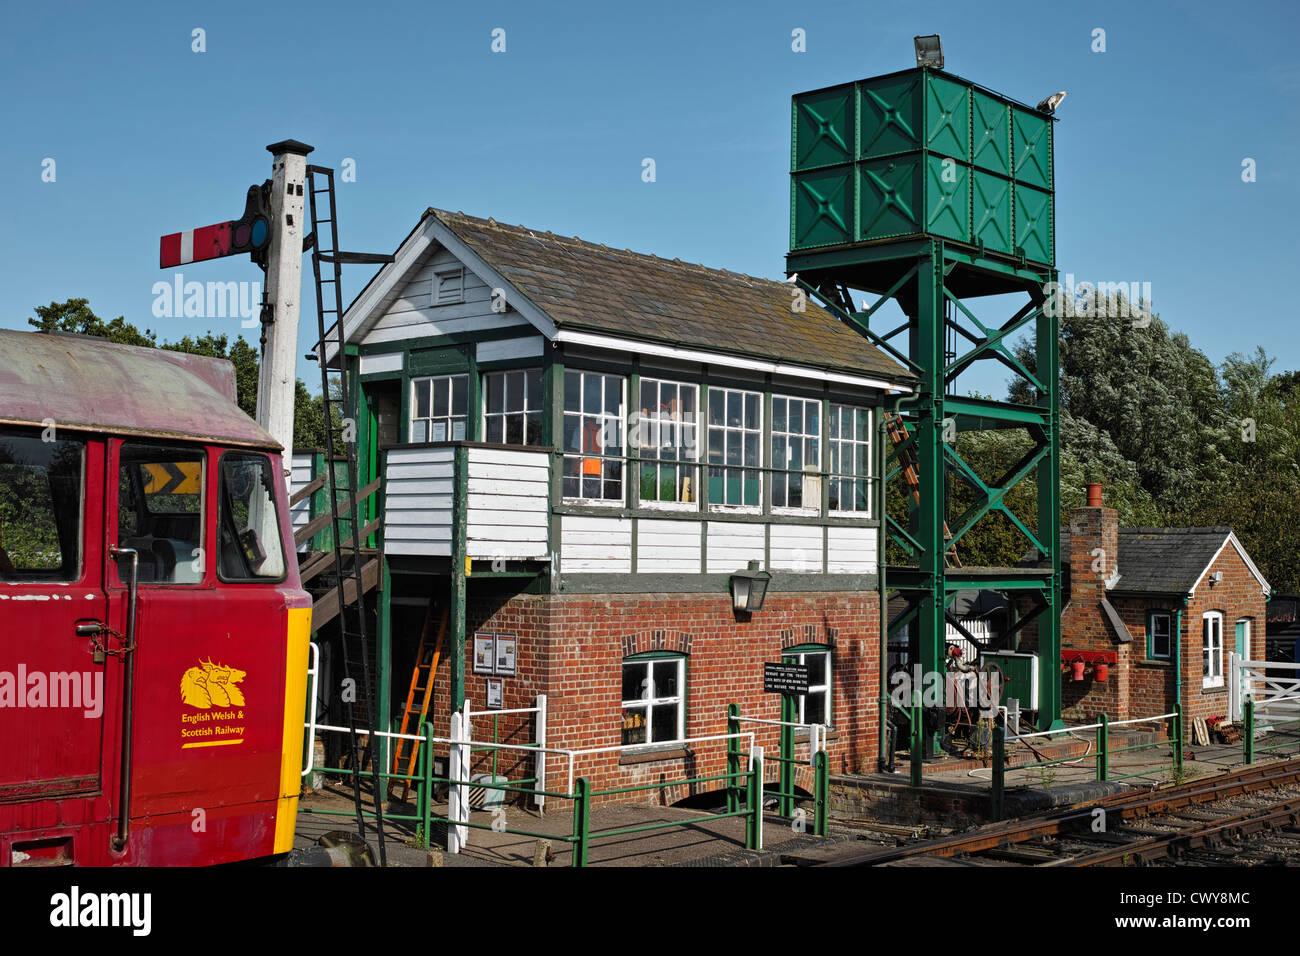 The Colne Valley & Halstead Railway, preserving a small fragment of Britain's steam train heritage. - Stock Image